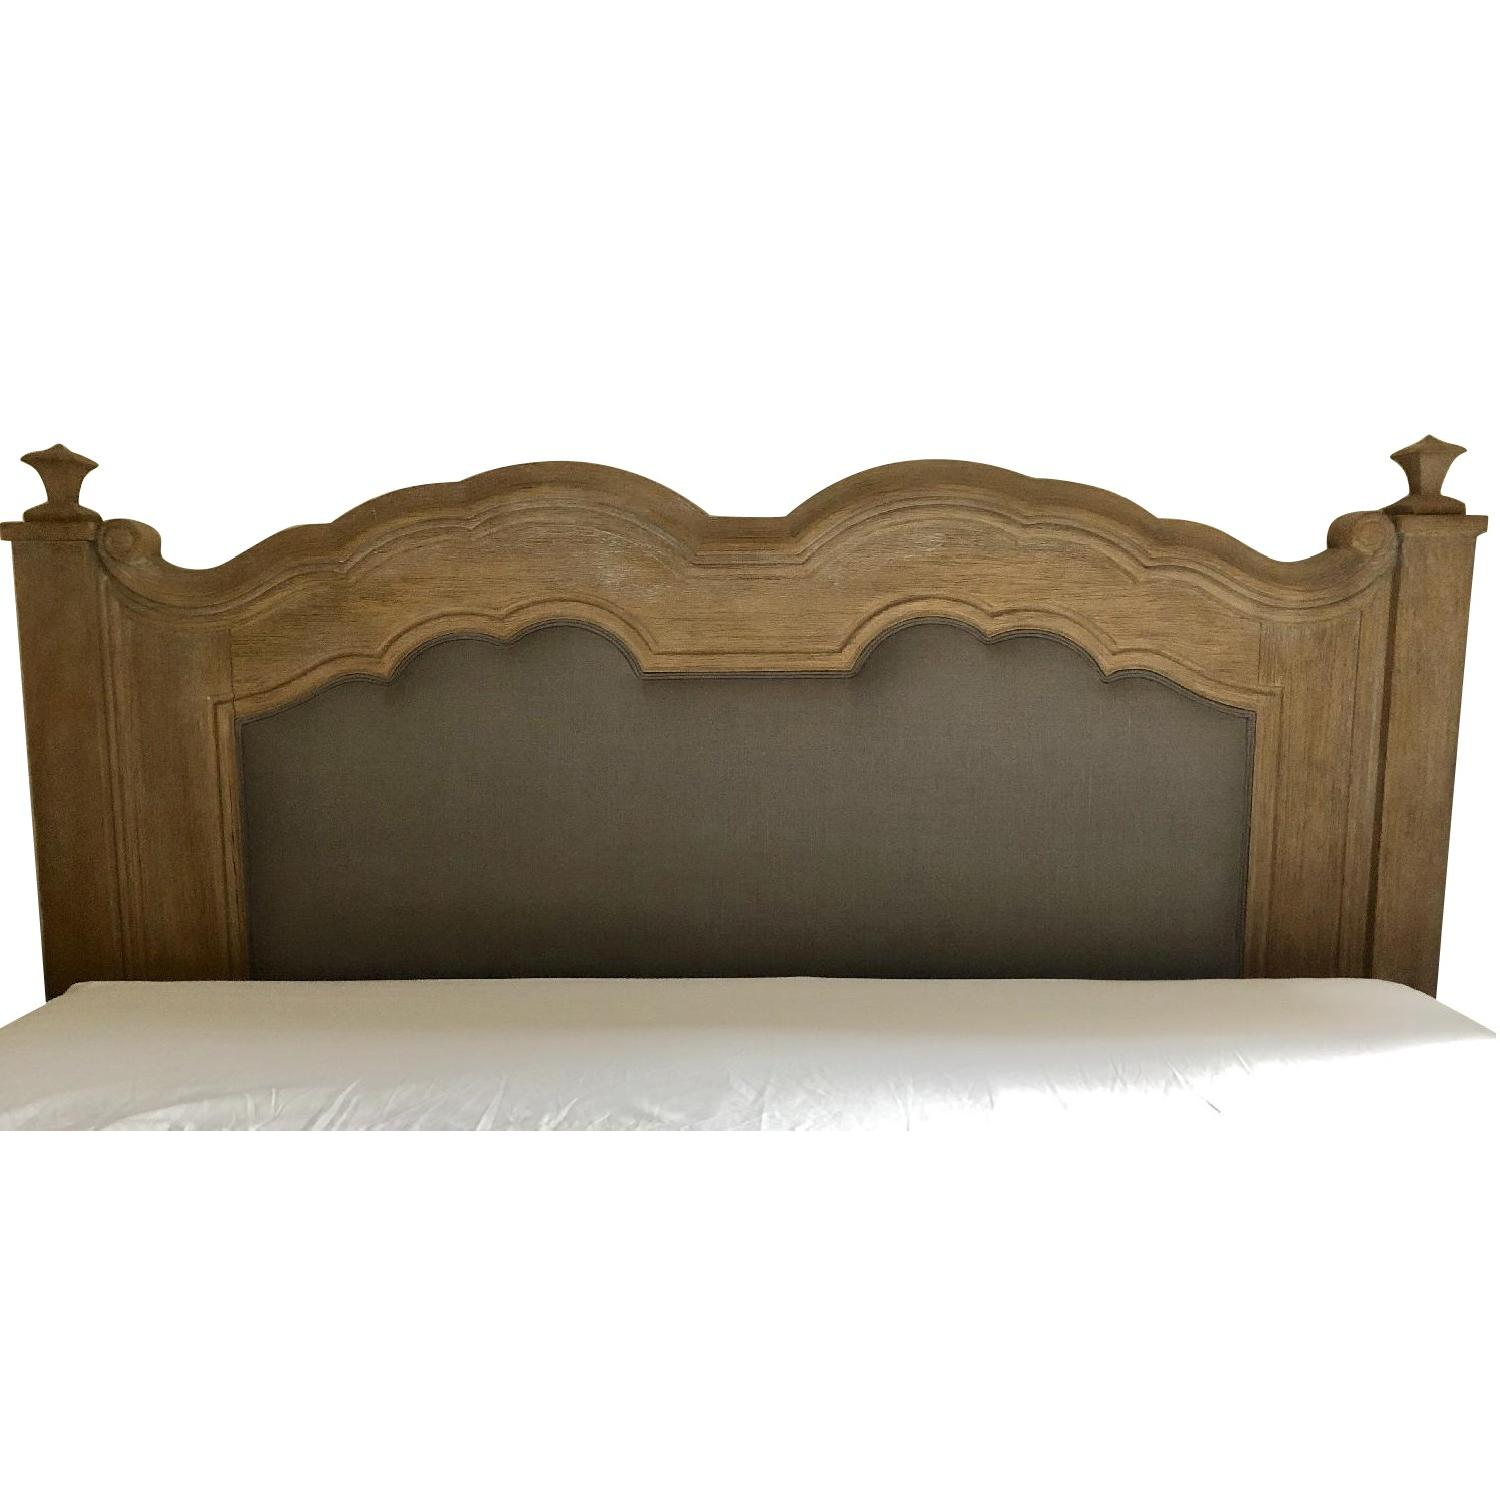 Anthropologie Distressed Wood & Gray Upholstered Headboard